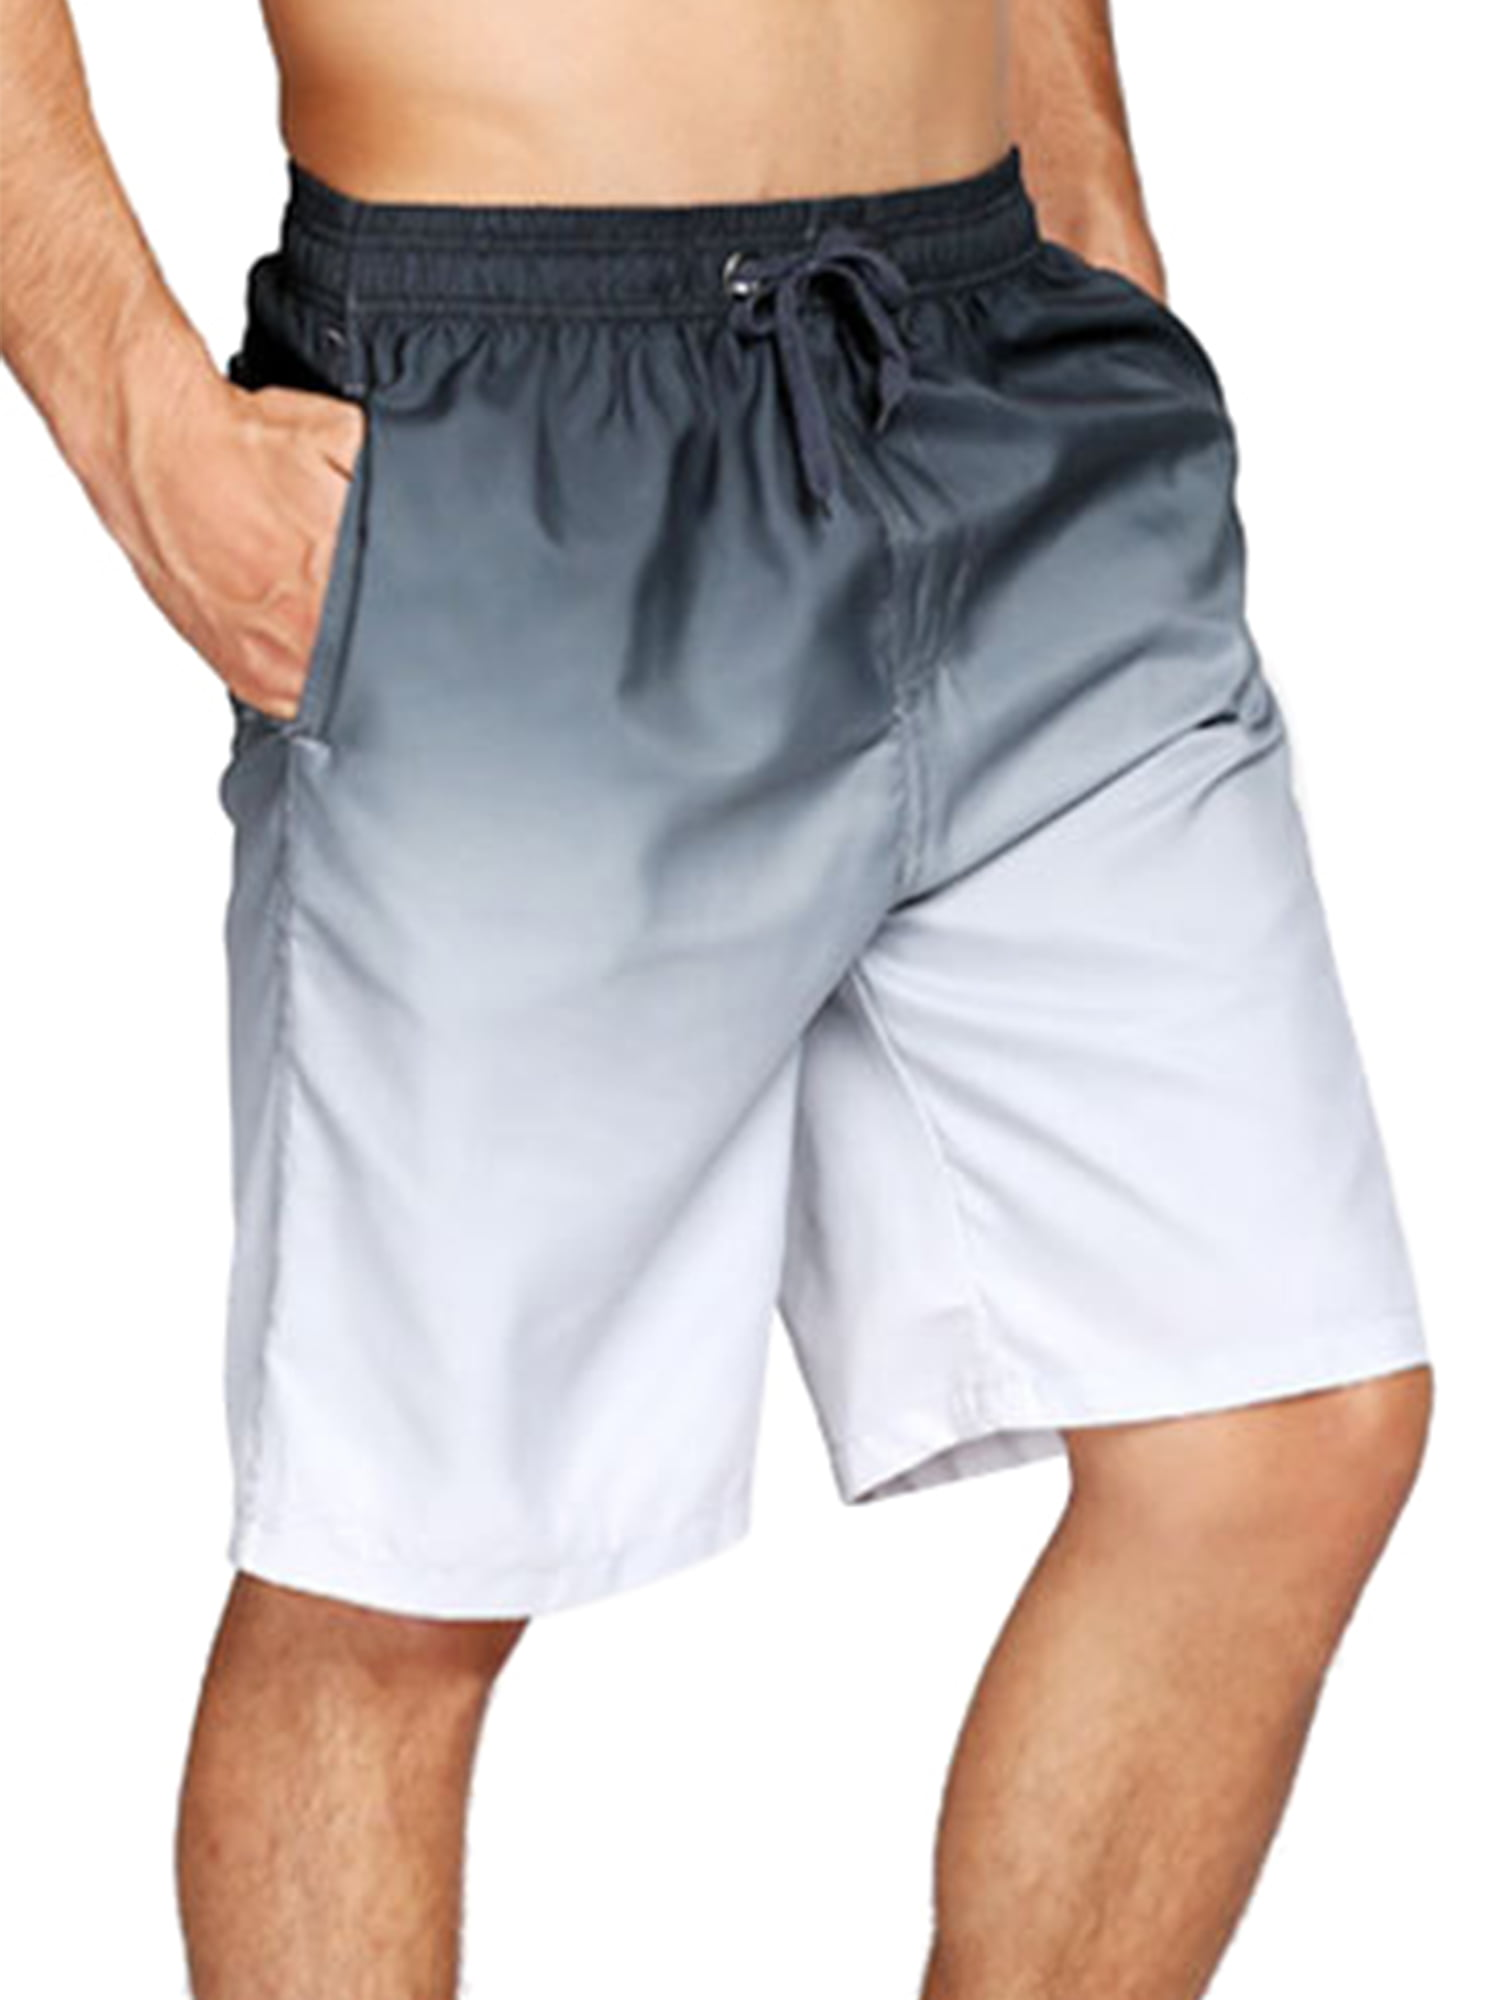 Details about  /Unisex Elastic Waist Drawstring Loose Boxer Shorts Trousers Printed Surf Trunks